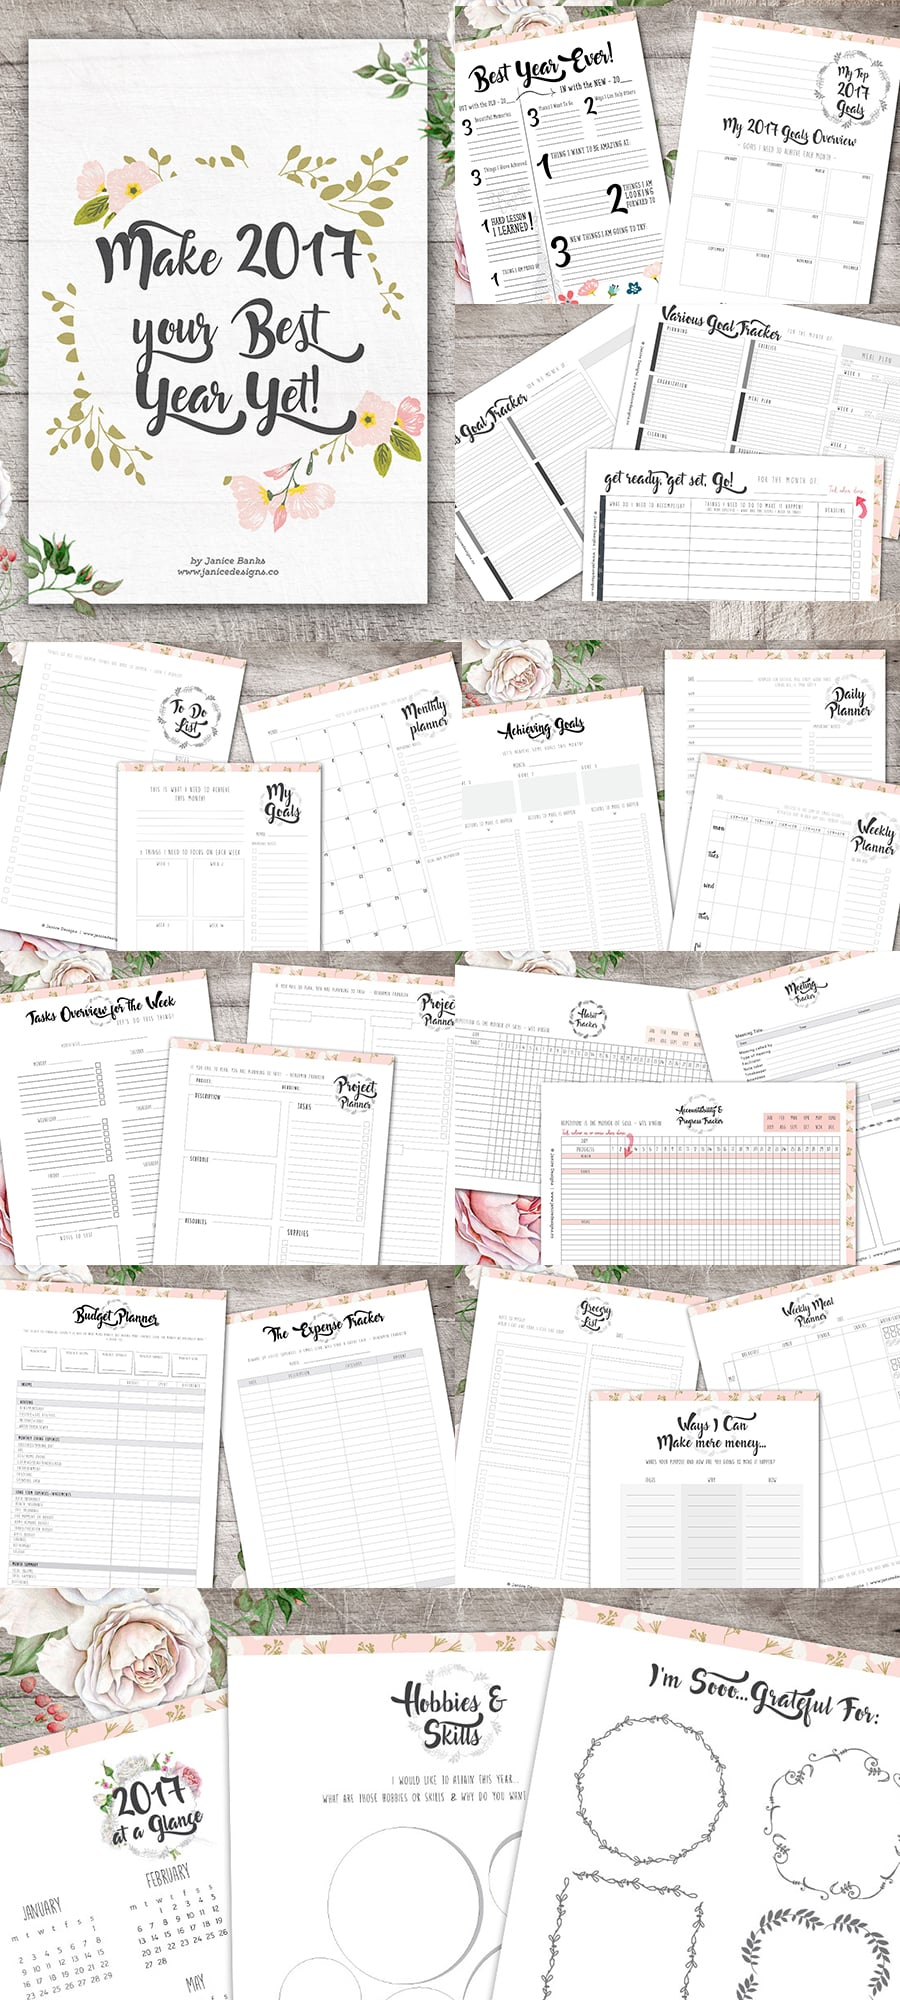 Life Planner: Make 2018 Your Best Year Yet Collection - Goal Setting Full preview 900x2000px